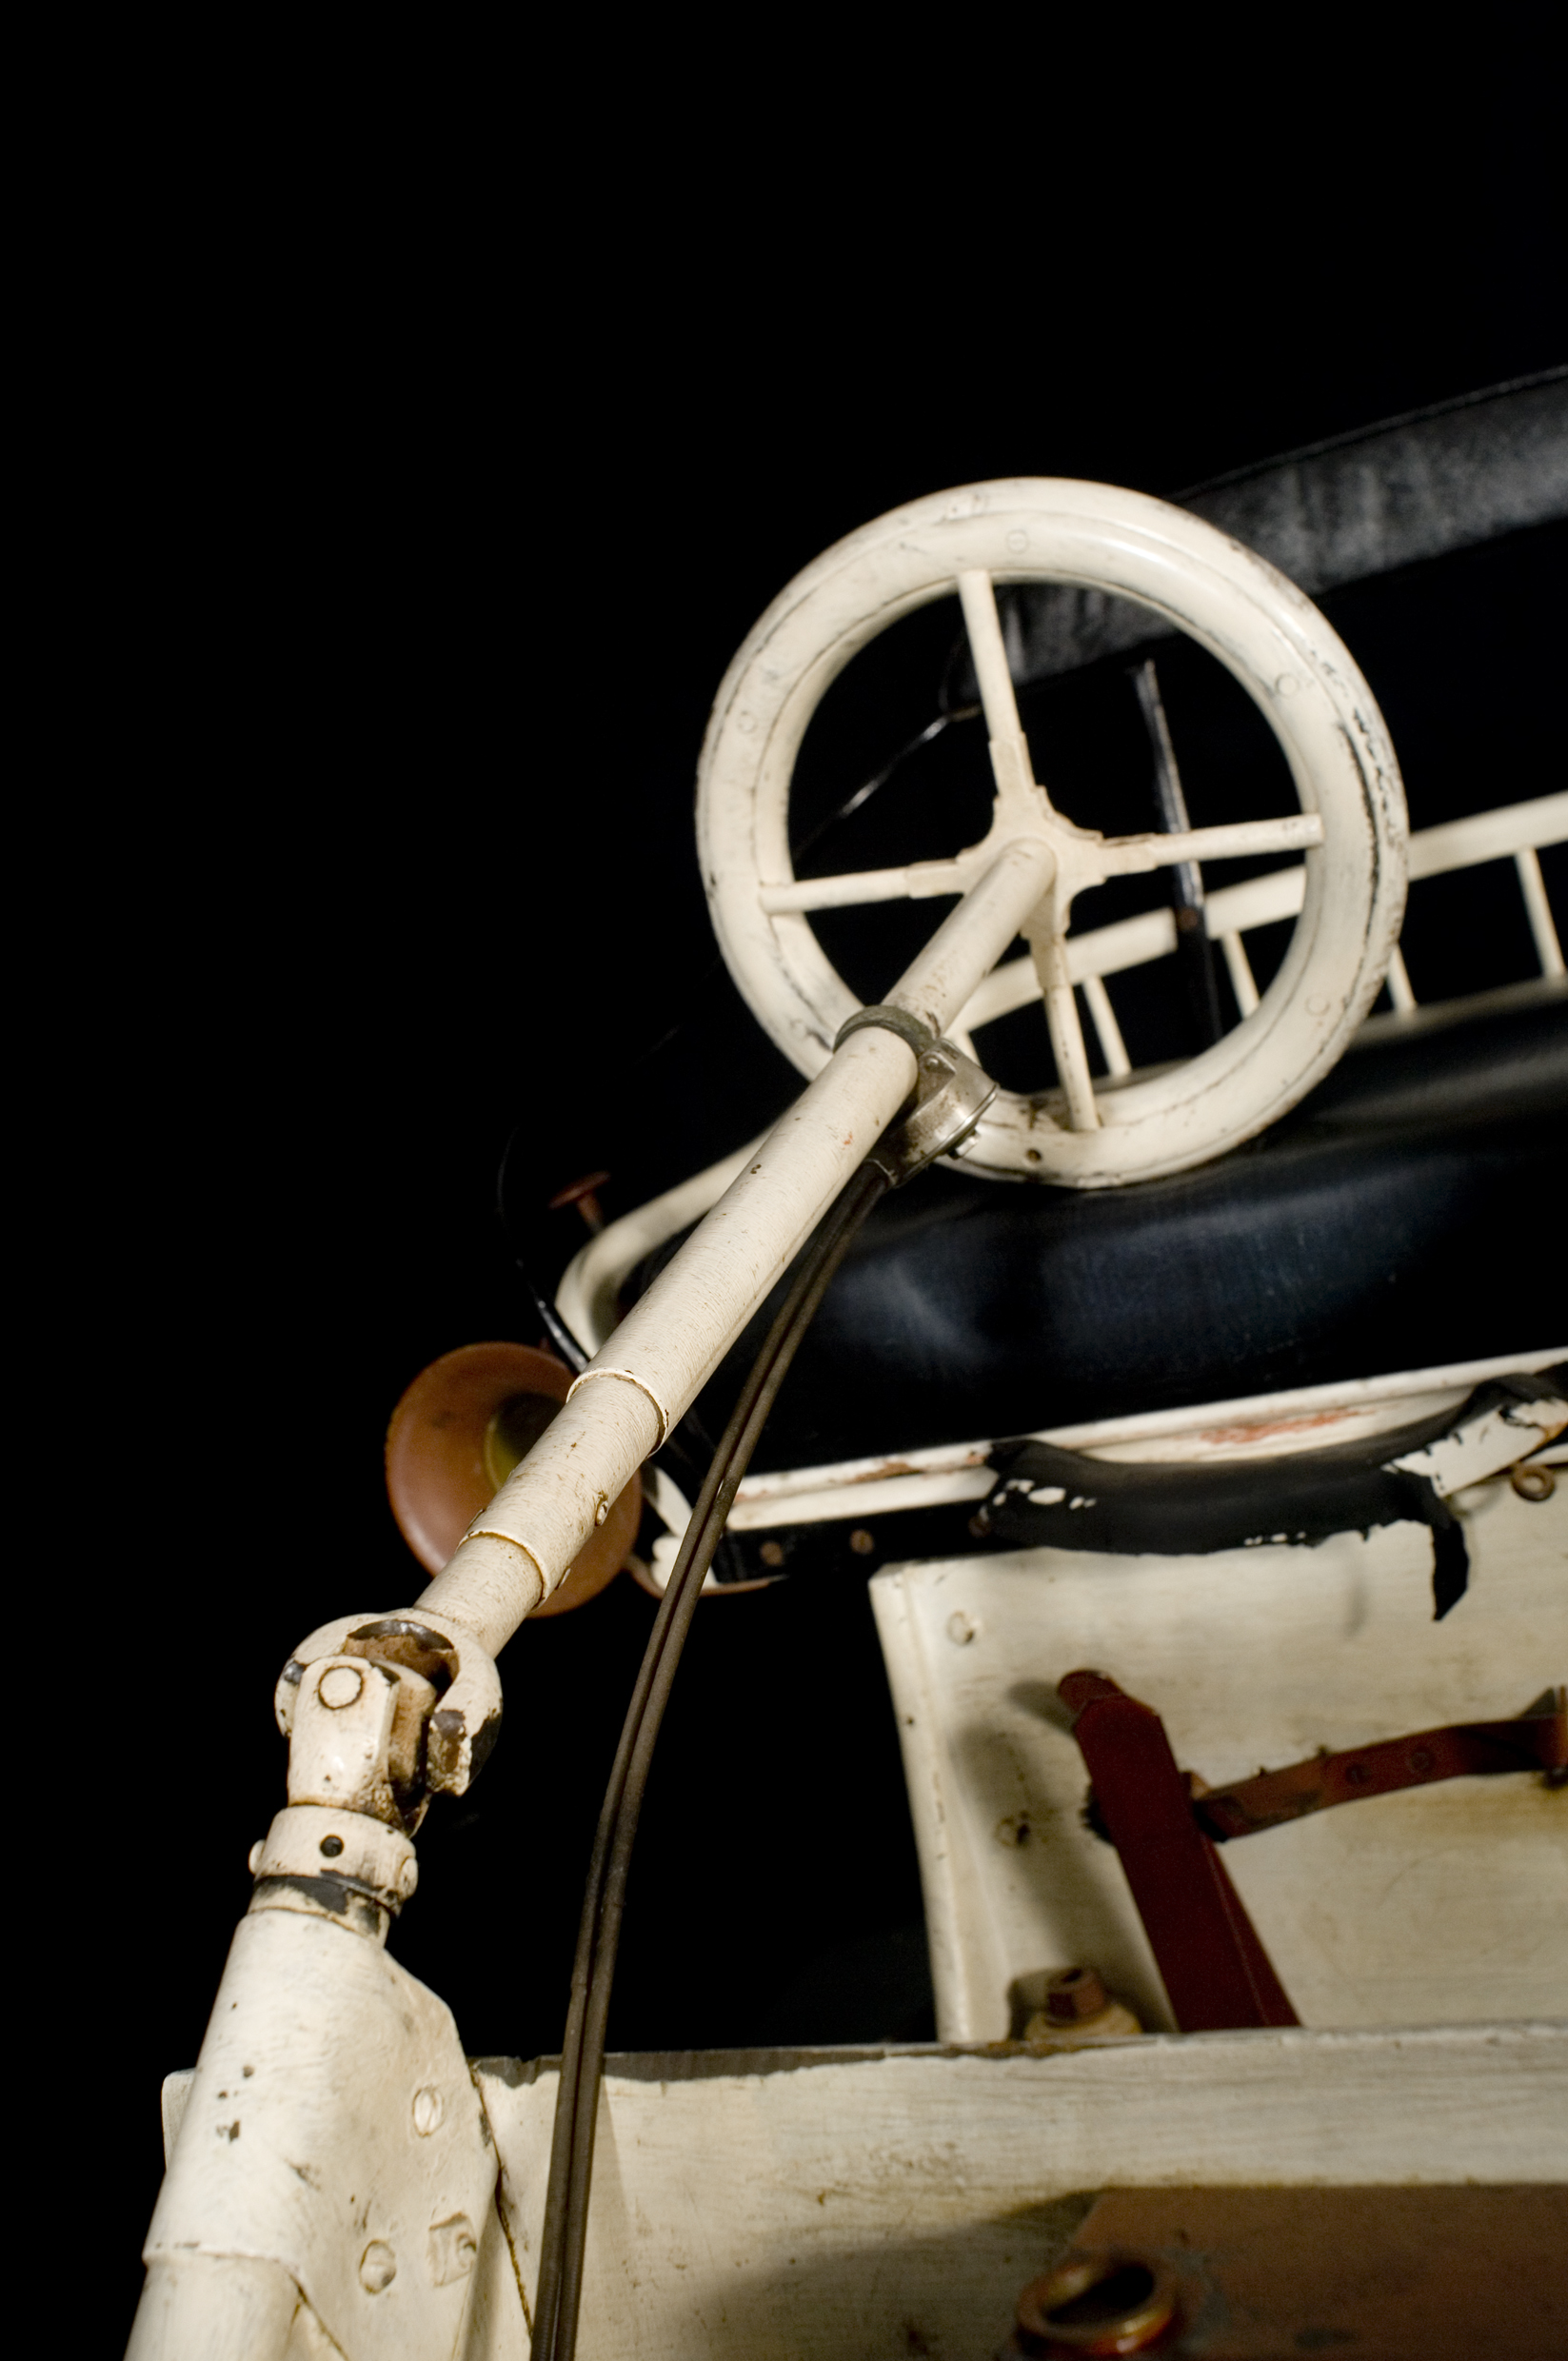 Detail of the articulated steering system.